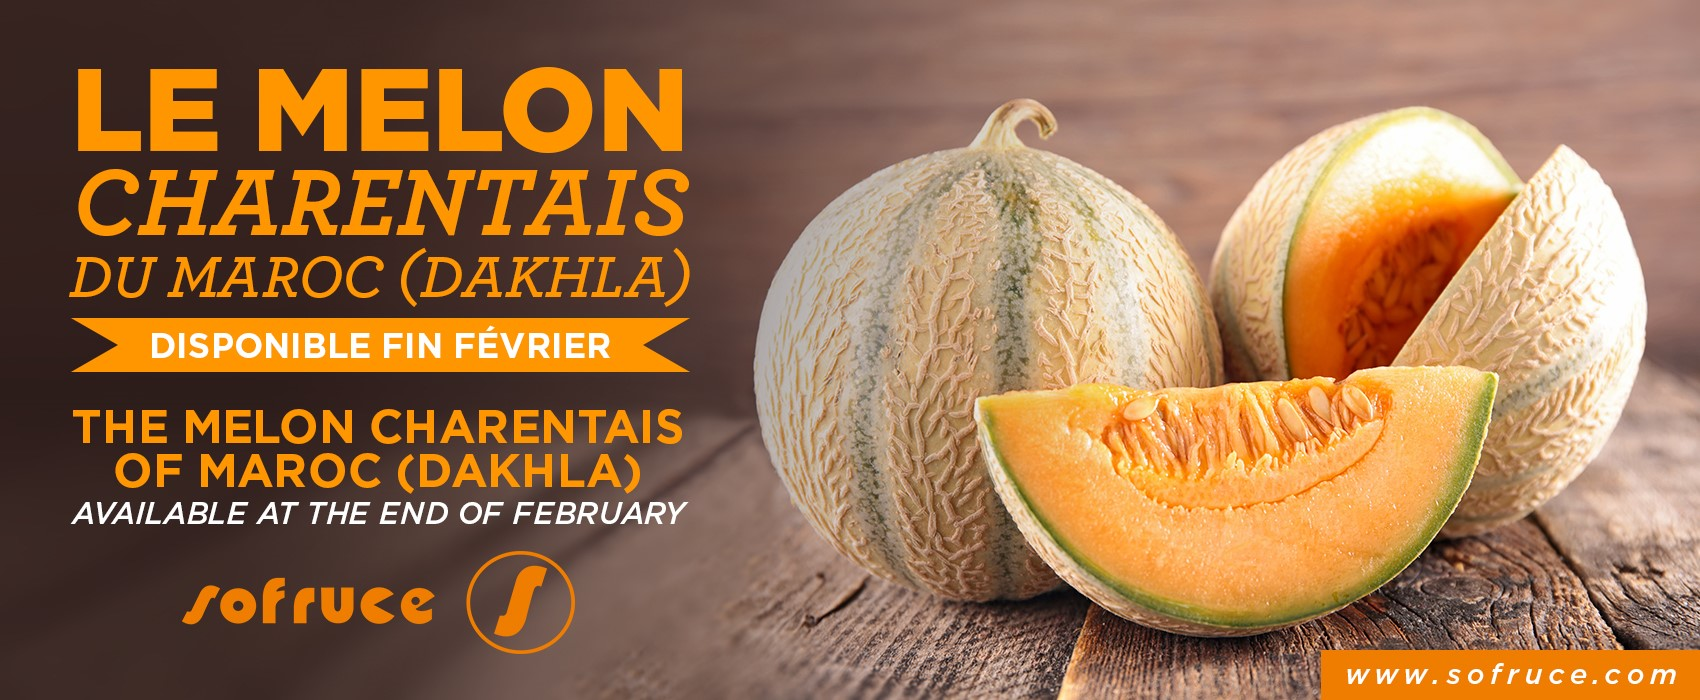 THE MELON CHARENTAIS AVAILABLE AT THE END OF FEBRUARY